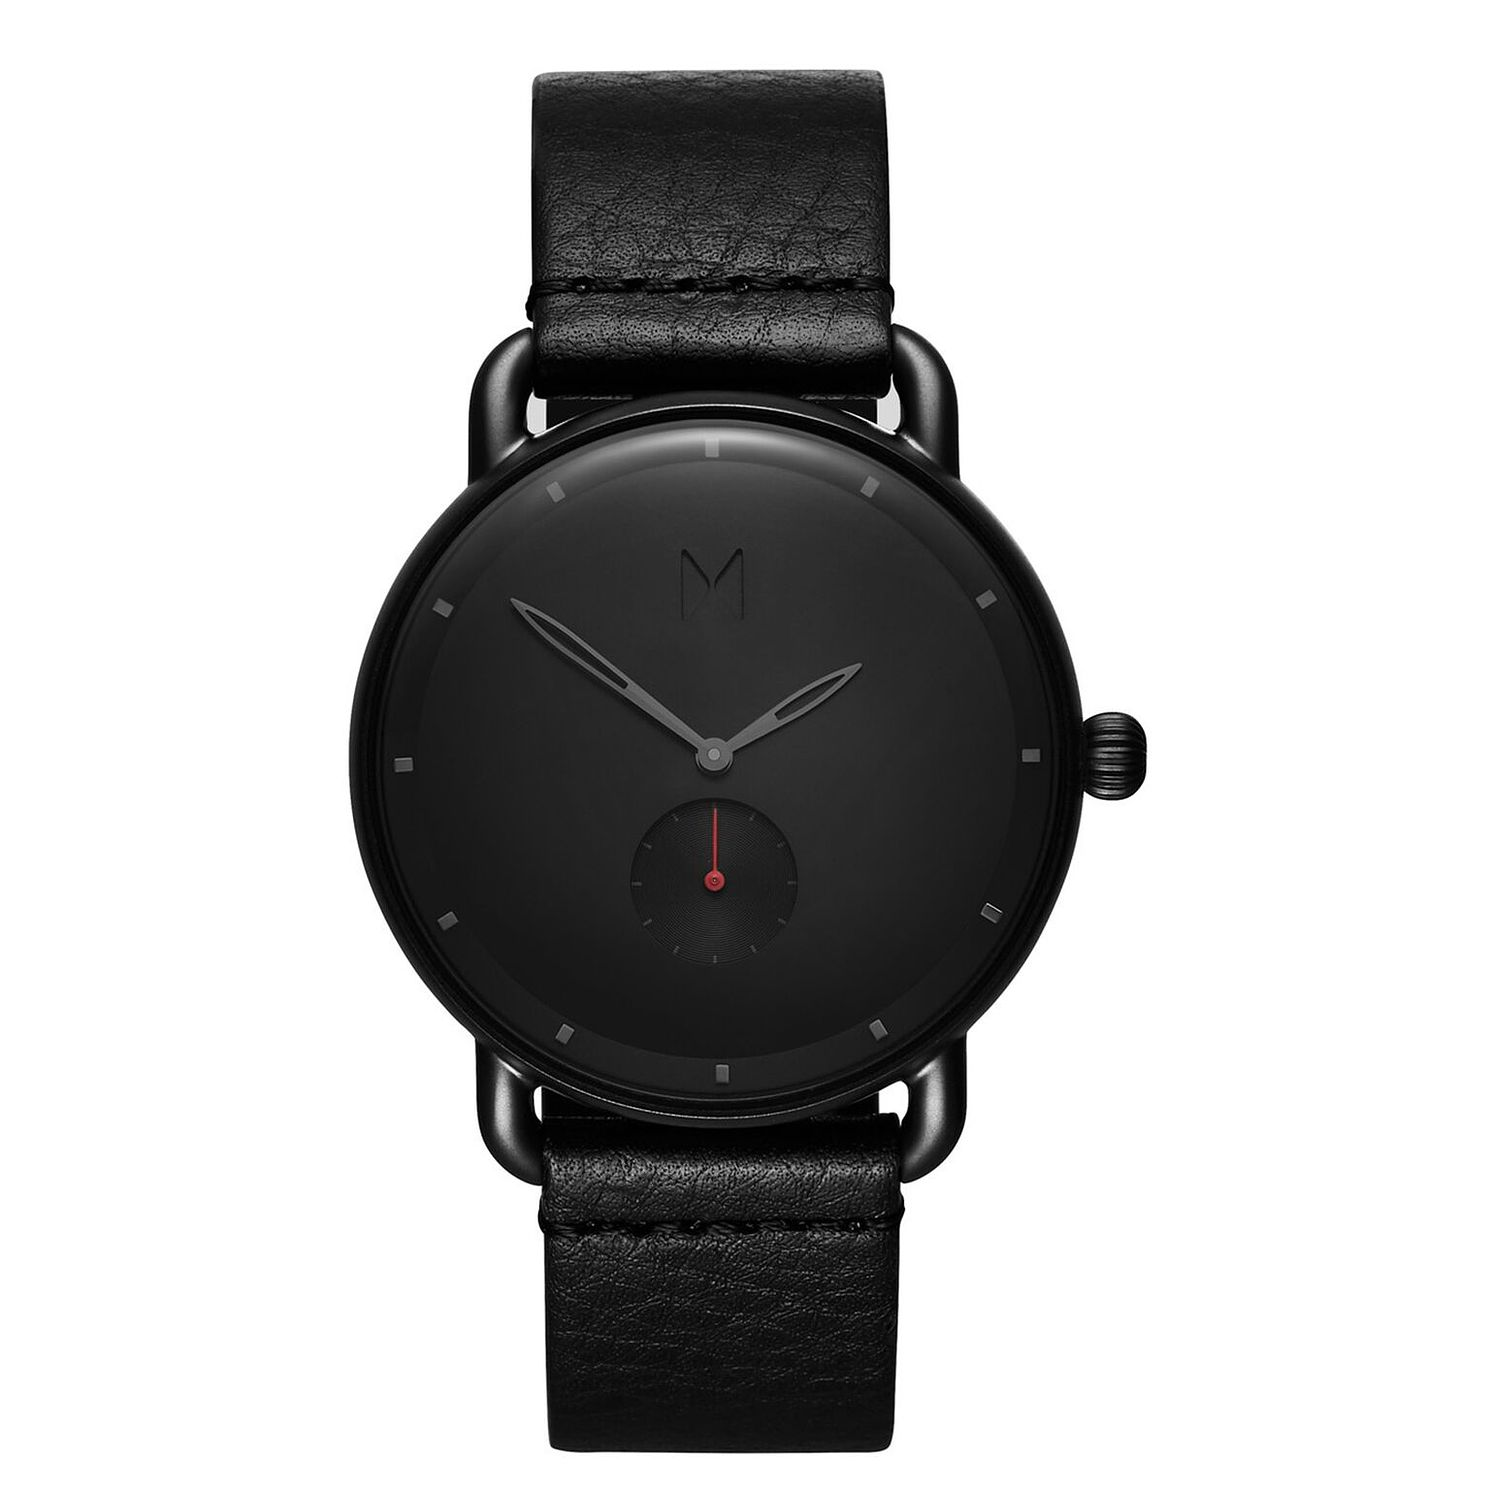 MVMT Revolver Men's Black Leather Strap Watch - Product number 5232988